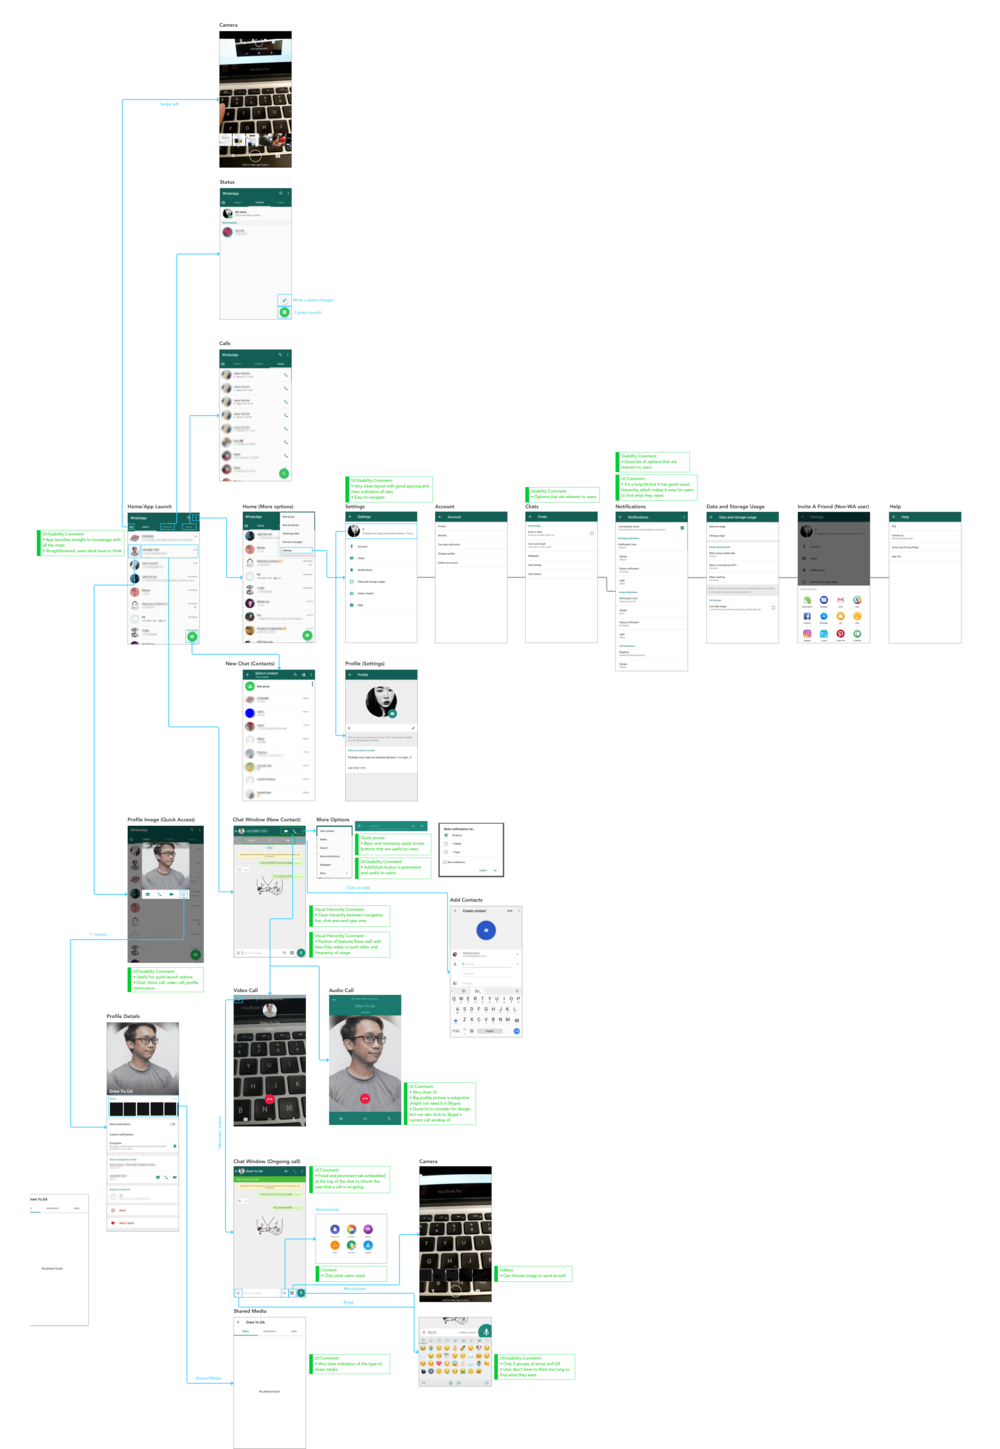 WhatsApp Screen Flow.png